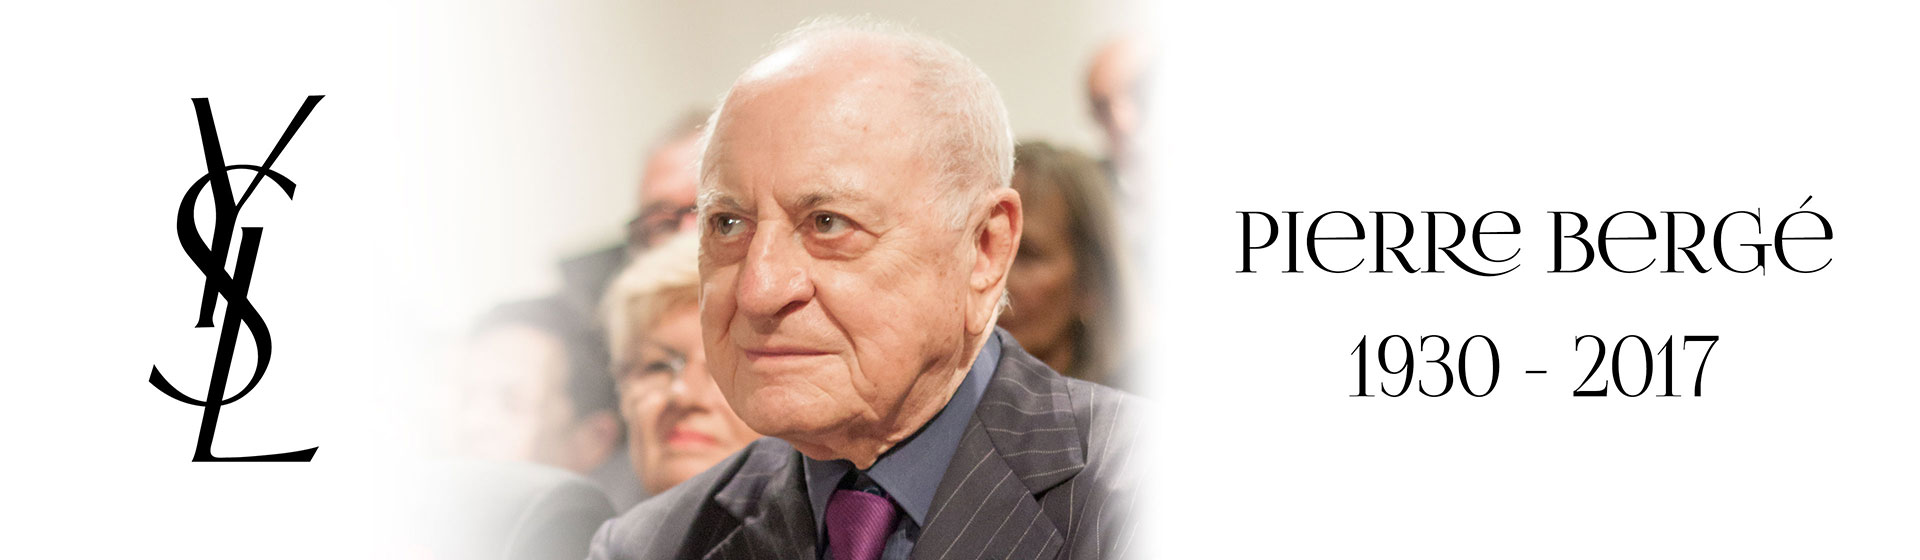 Pierre Bergé Co-Founder of Saint Laurent Dies